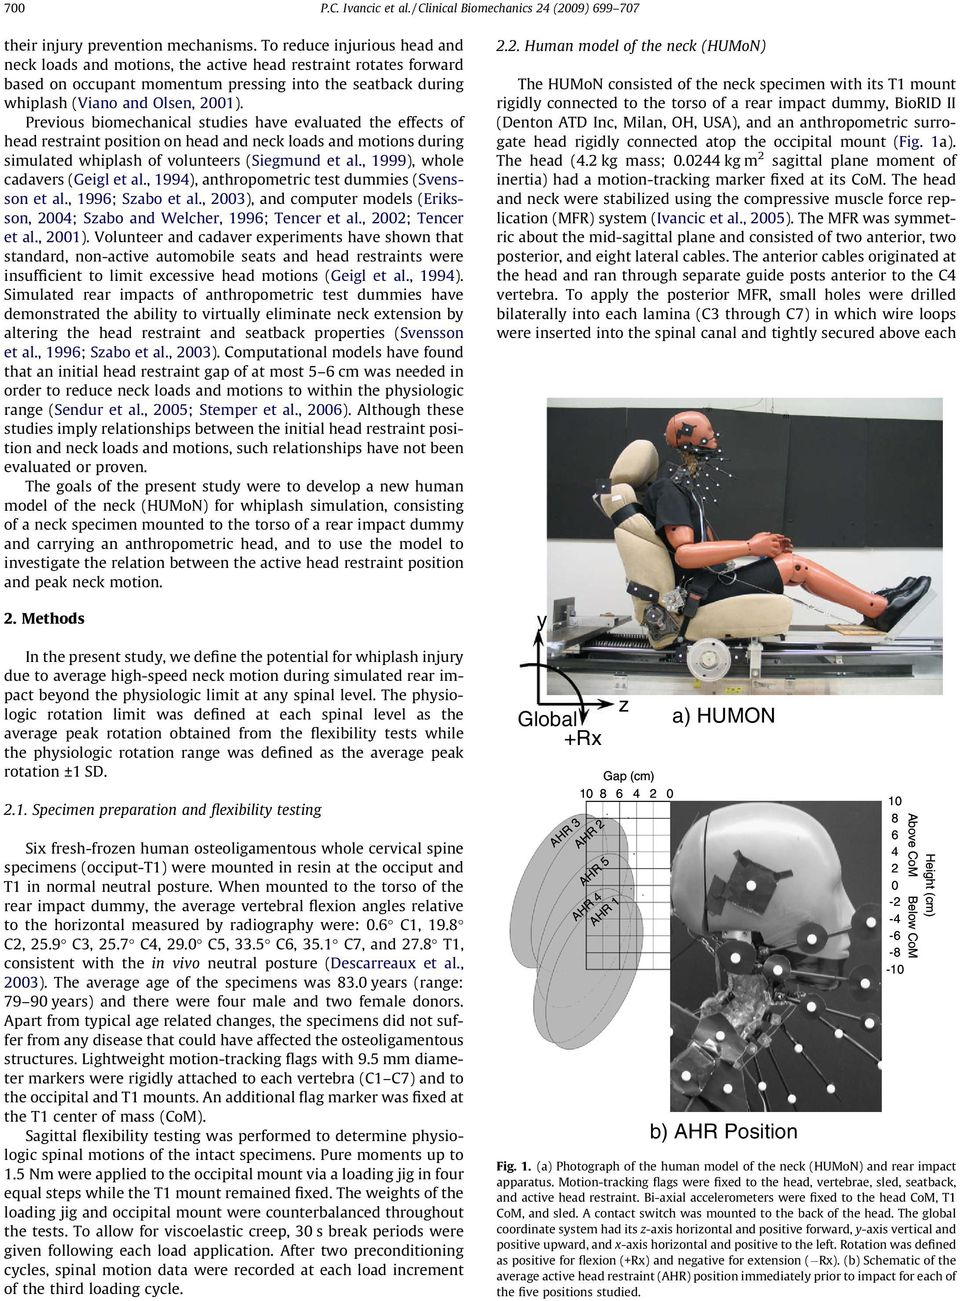 Previous biomechanical studies have evaluated the effects of head restraint position on head and neck loads and motions during simulated whiplash of volunteers (Siegmund et al.